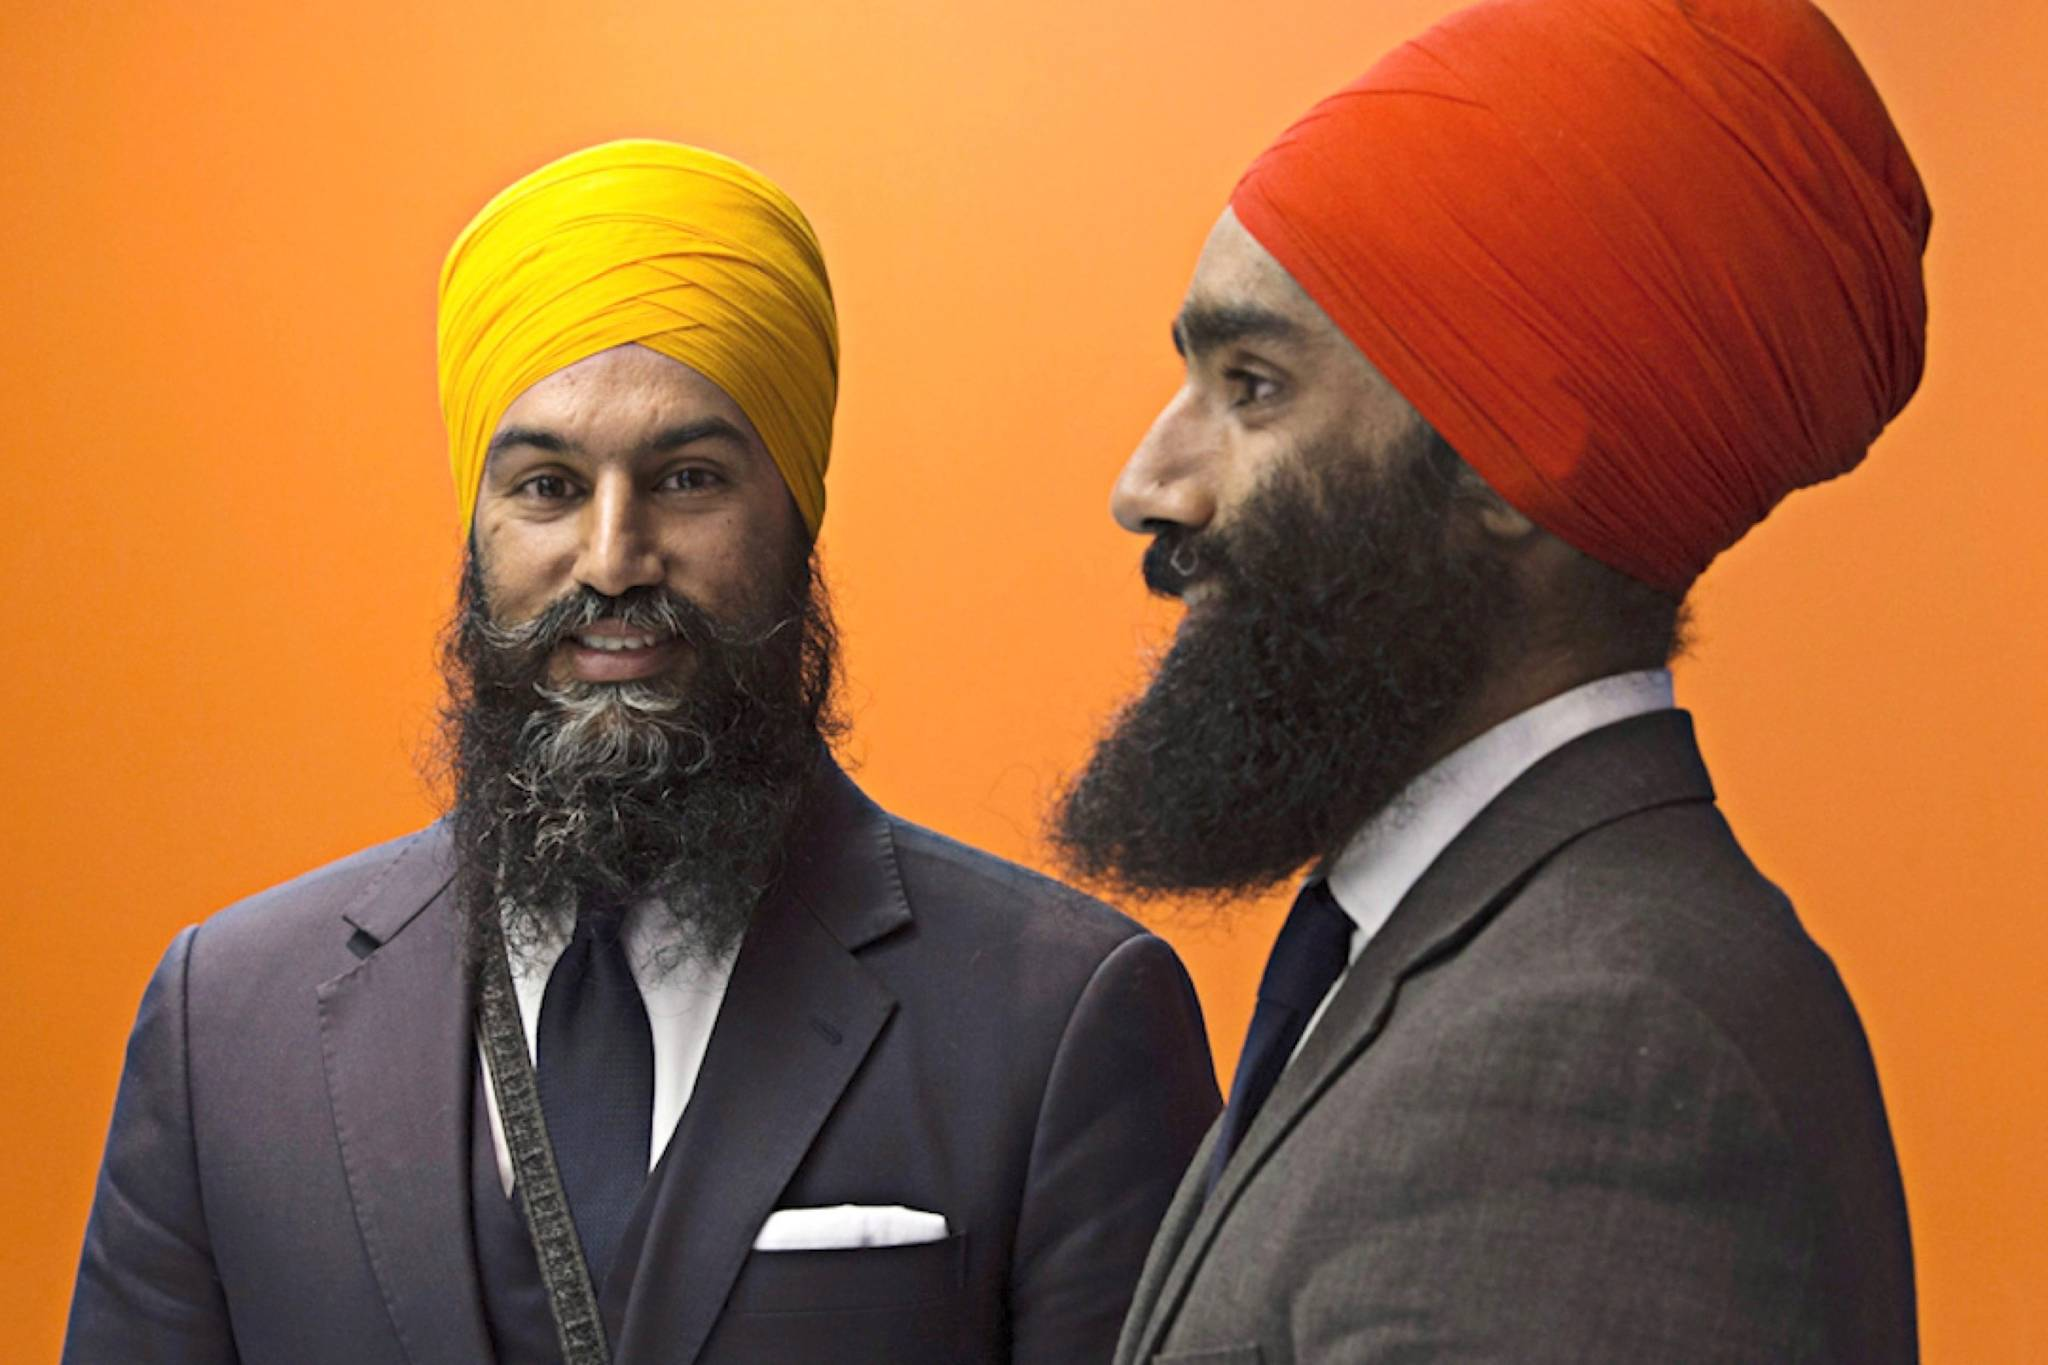 VIDEO: NDP launches charm offensive with Jagmeet Singh as it kicks off leader's tour